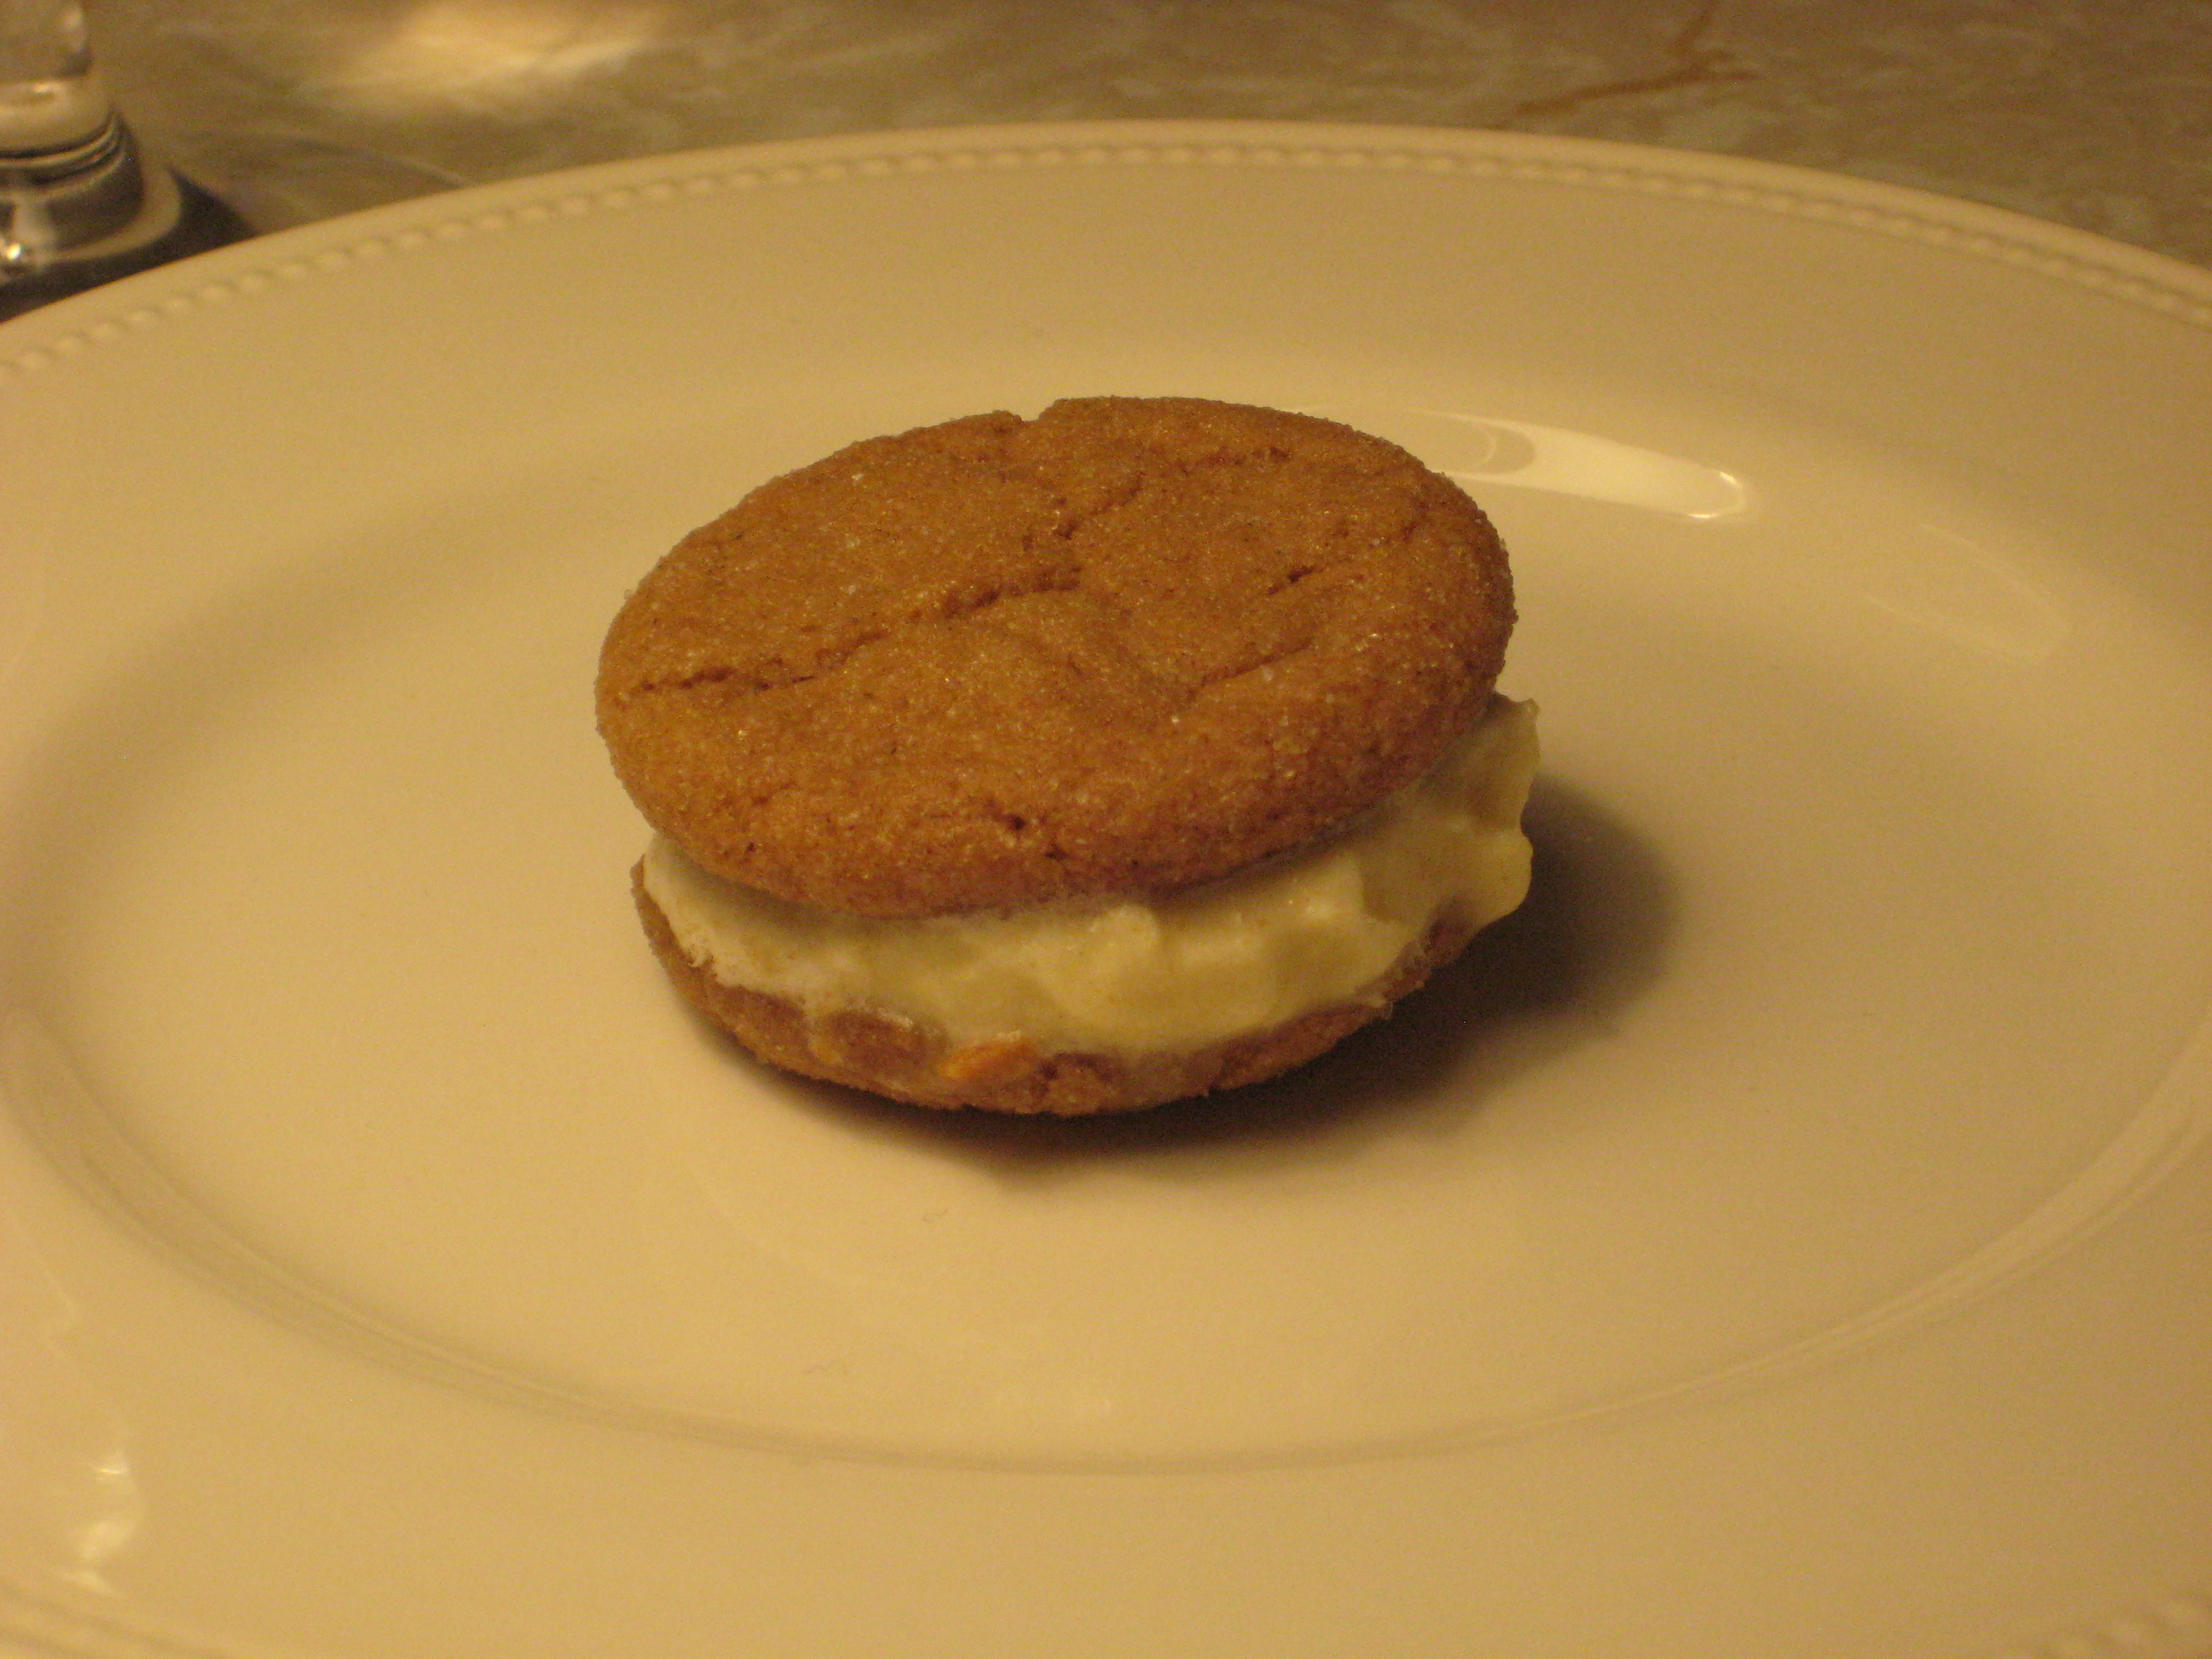 Ginger Snap Ice Cream Sandwiches